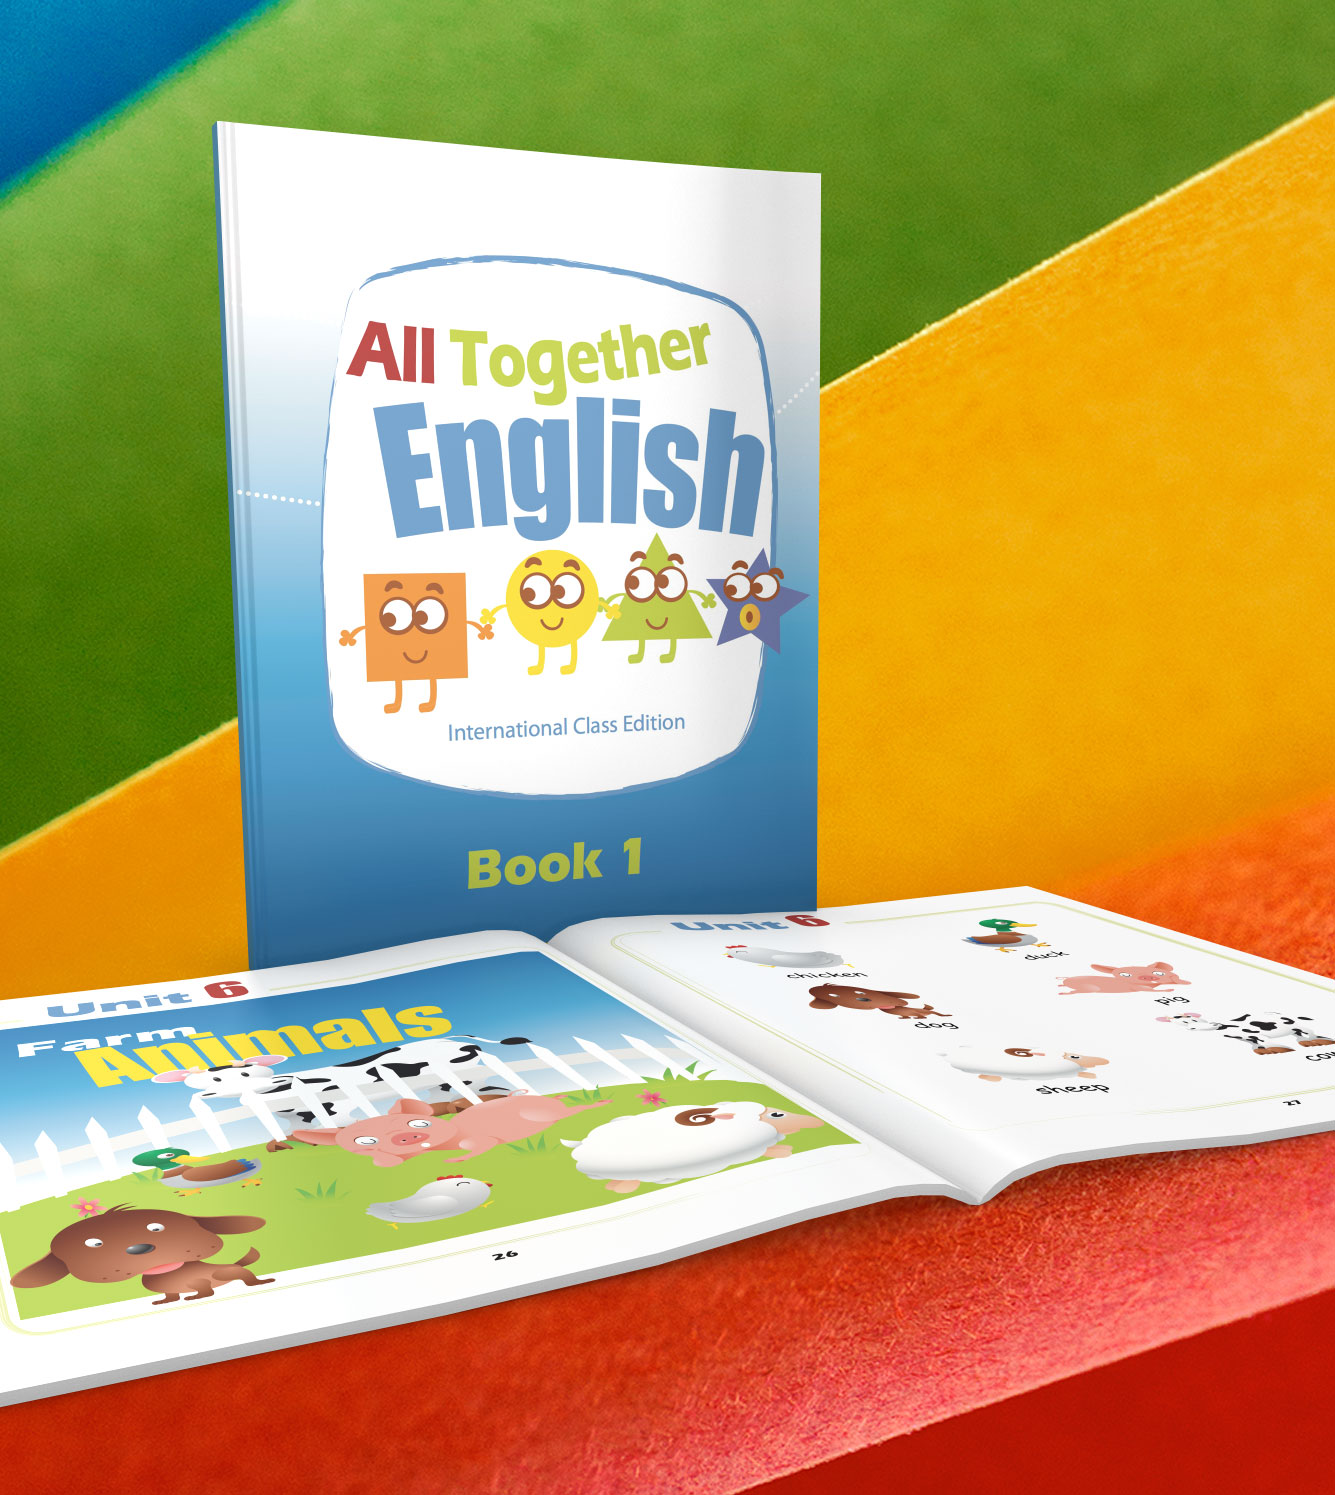 All Together English Book 1 Esl English Lessons For Young